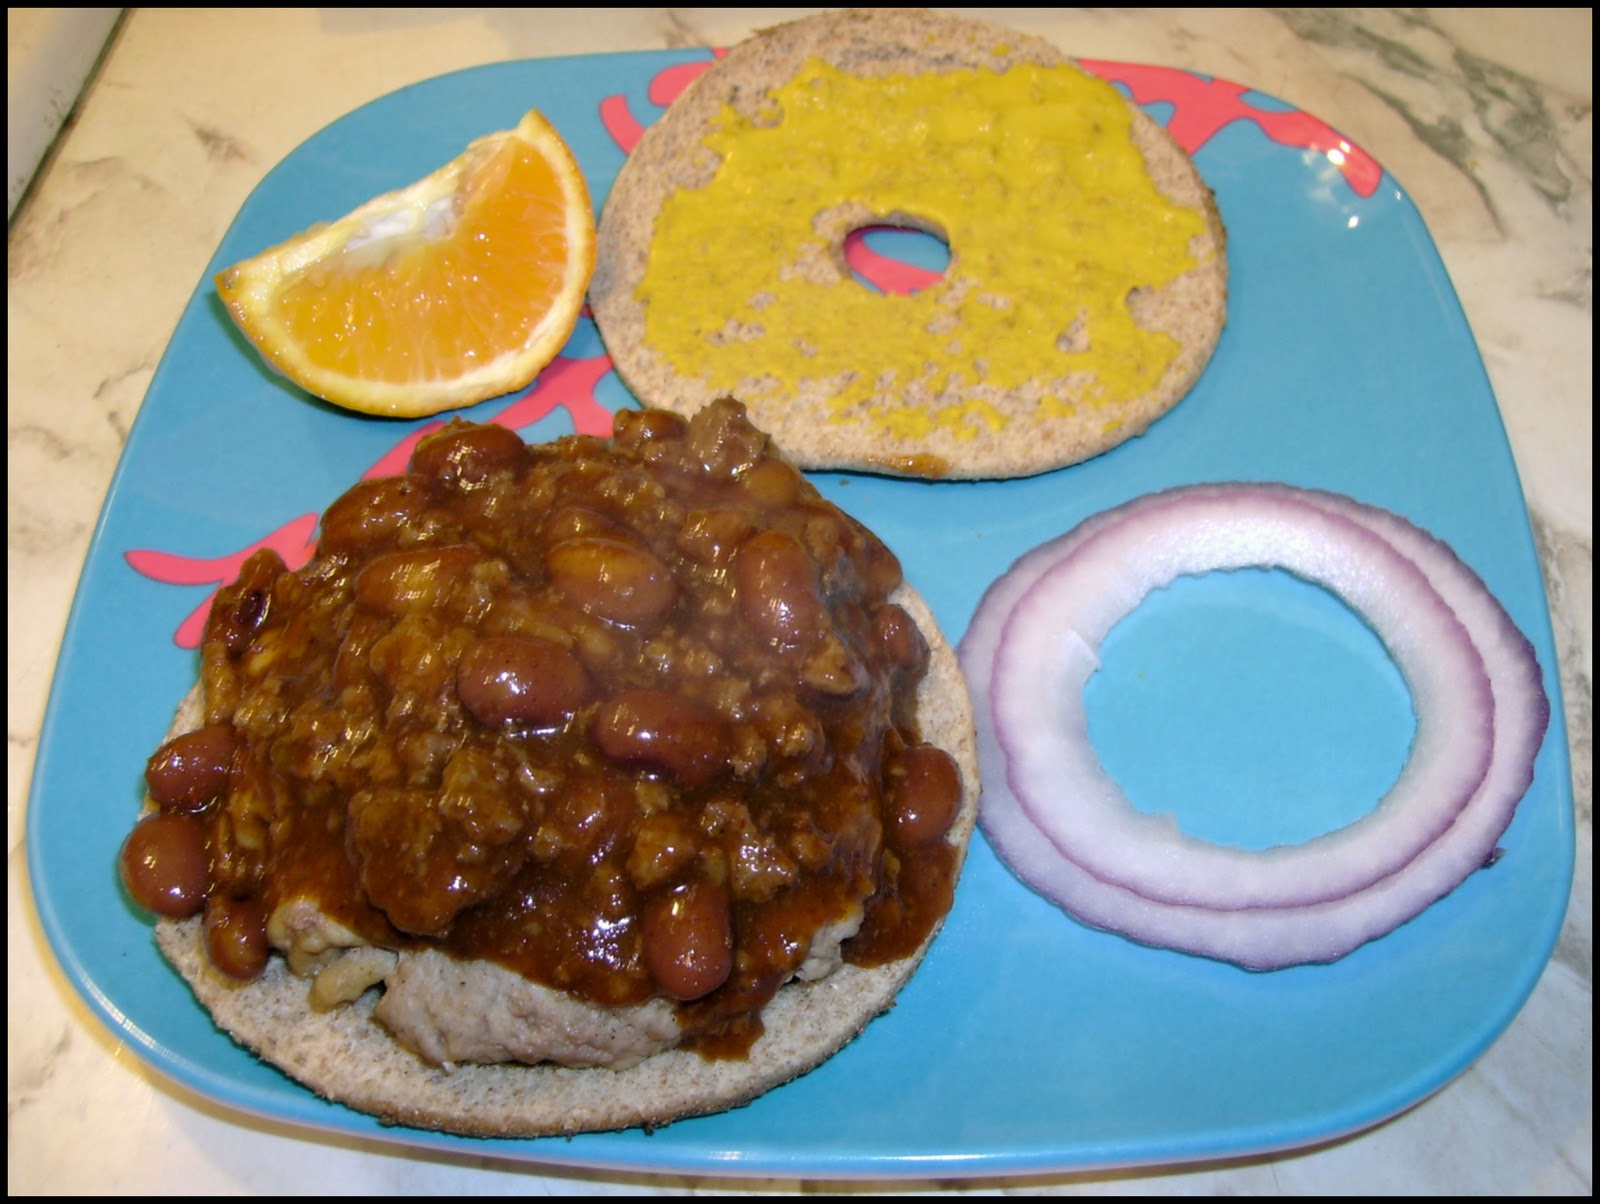 Place the bun (bagel) bottom on a serving plate. Add the burger ...